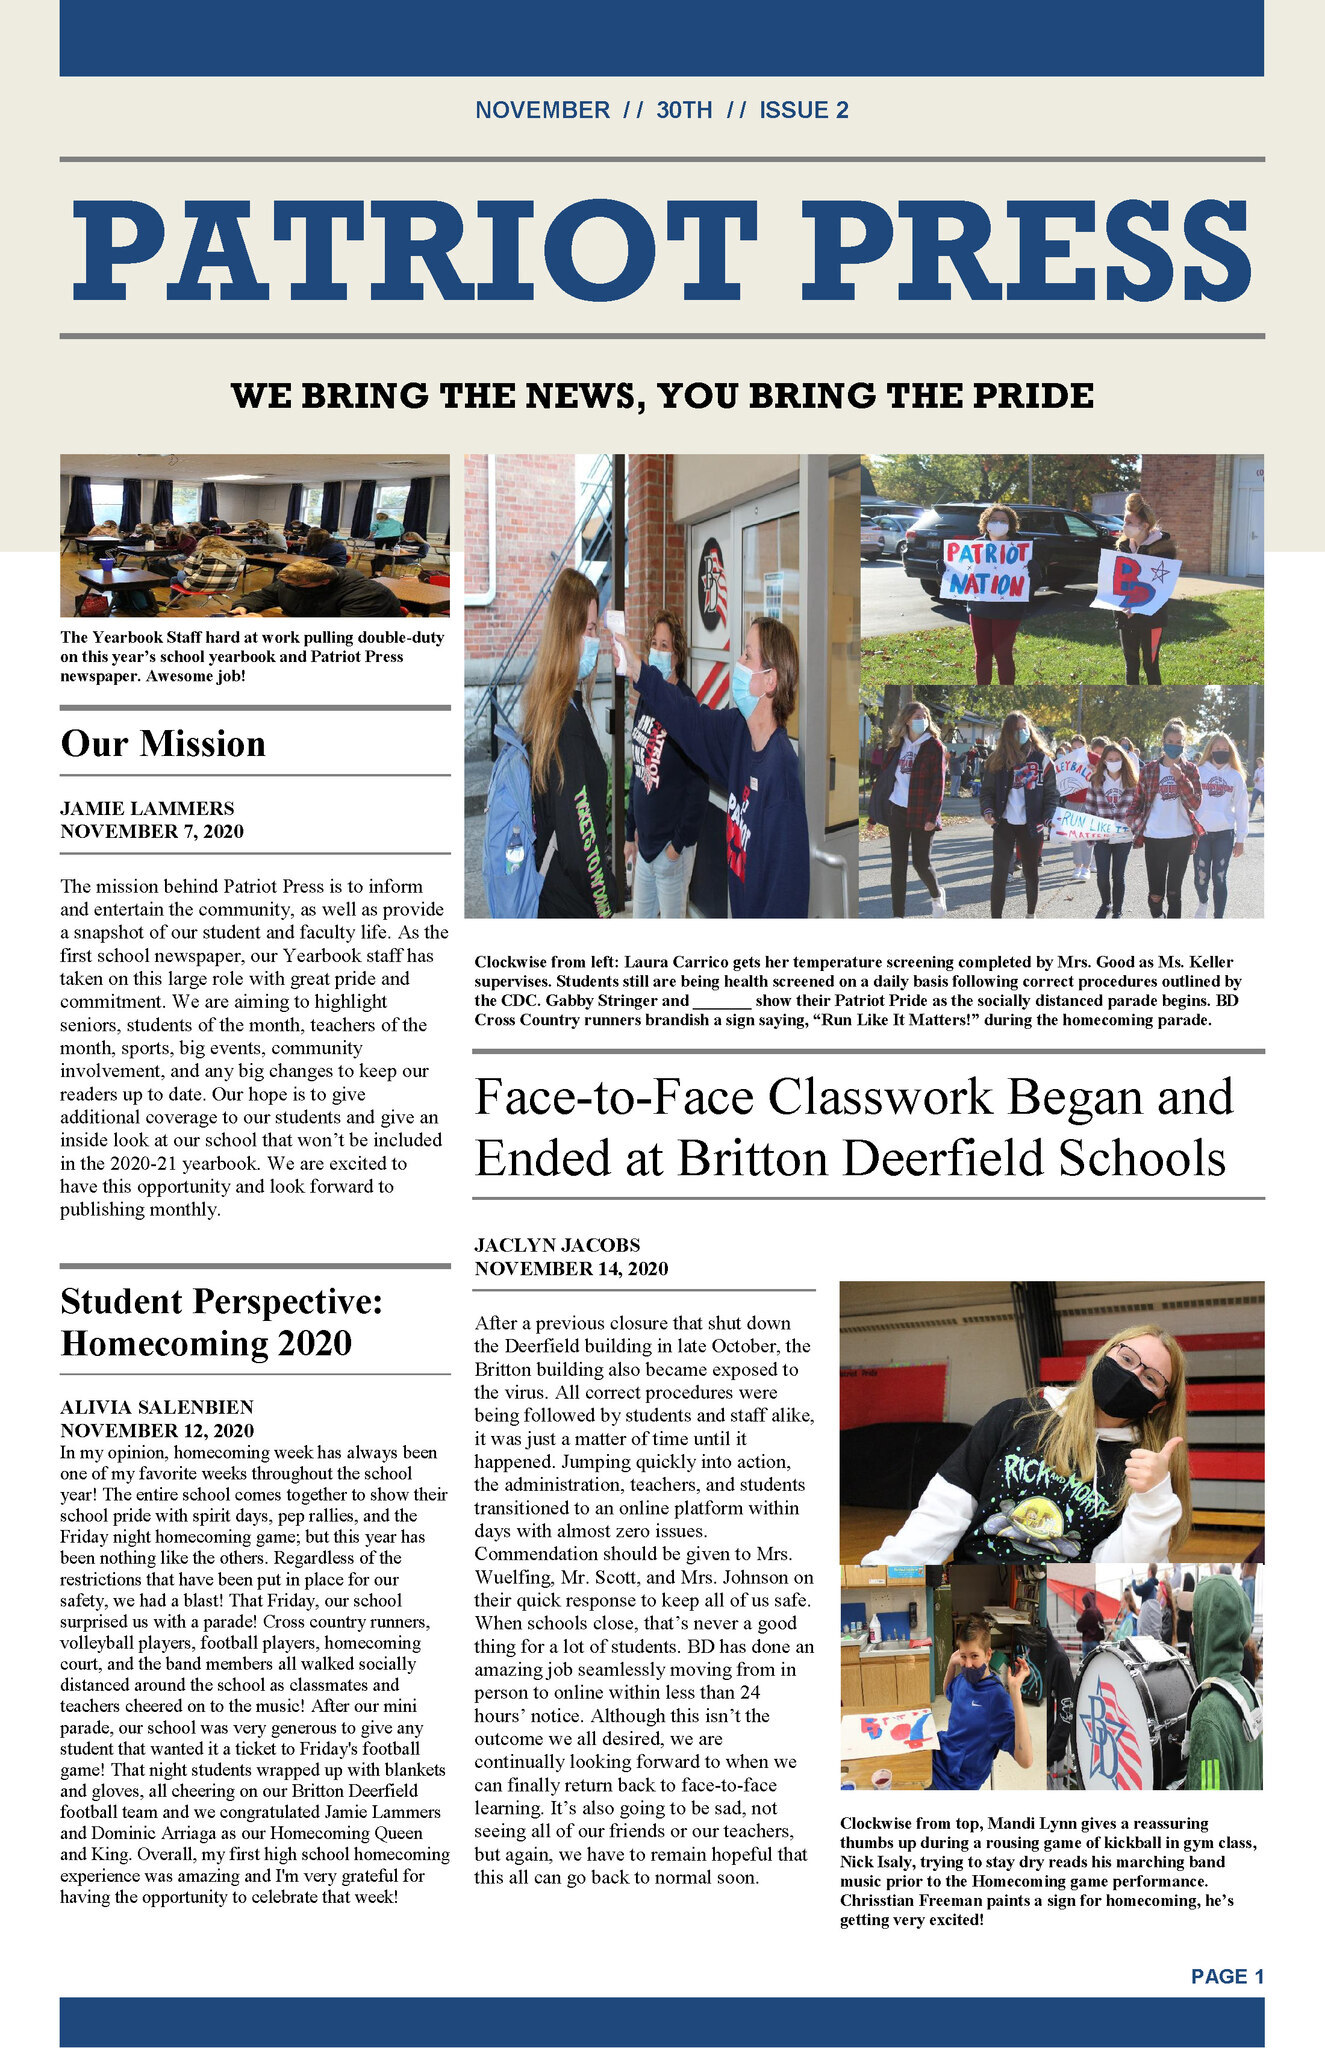 Patriot Press Edition 2